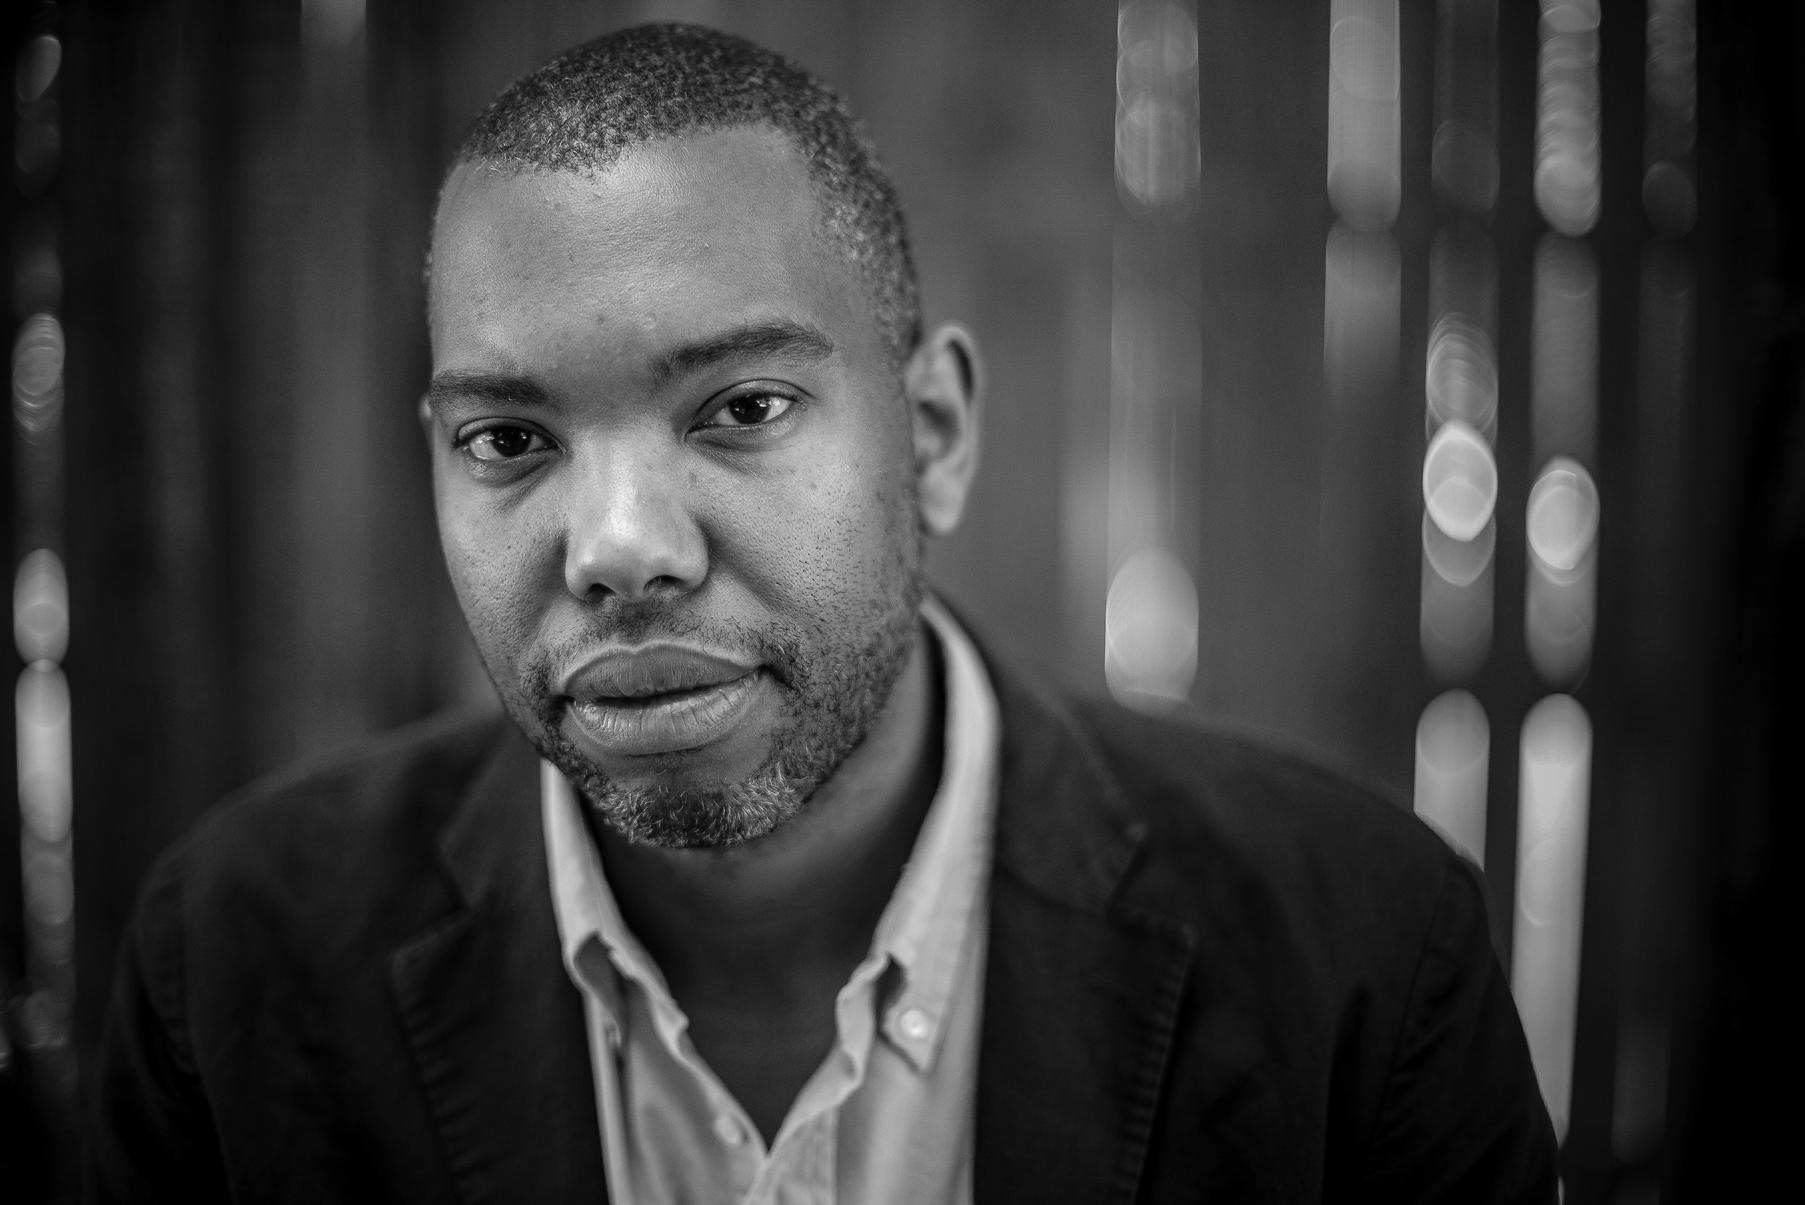 Author Ta-Nehisi Coates in Baltimore City, Md on July 16, 2015. © Gabriella Demczuk / The New York Times